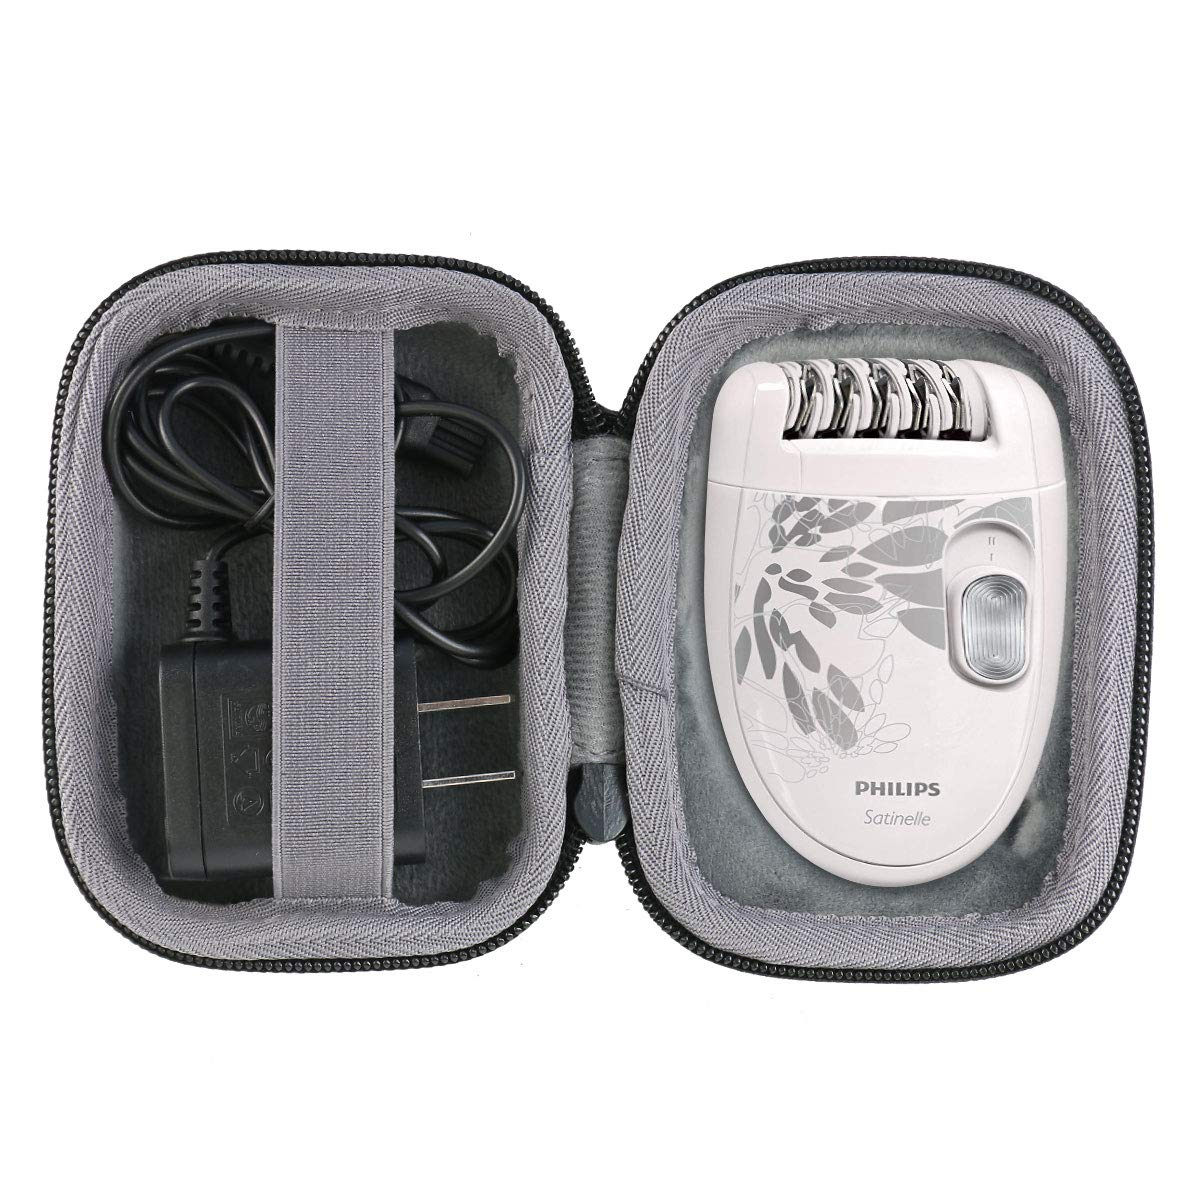 co2crea Hard Travel Case for Philips Satinelle Essential HP6401/50 Compact Hair Removal Epilator